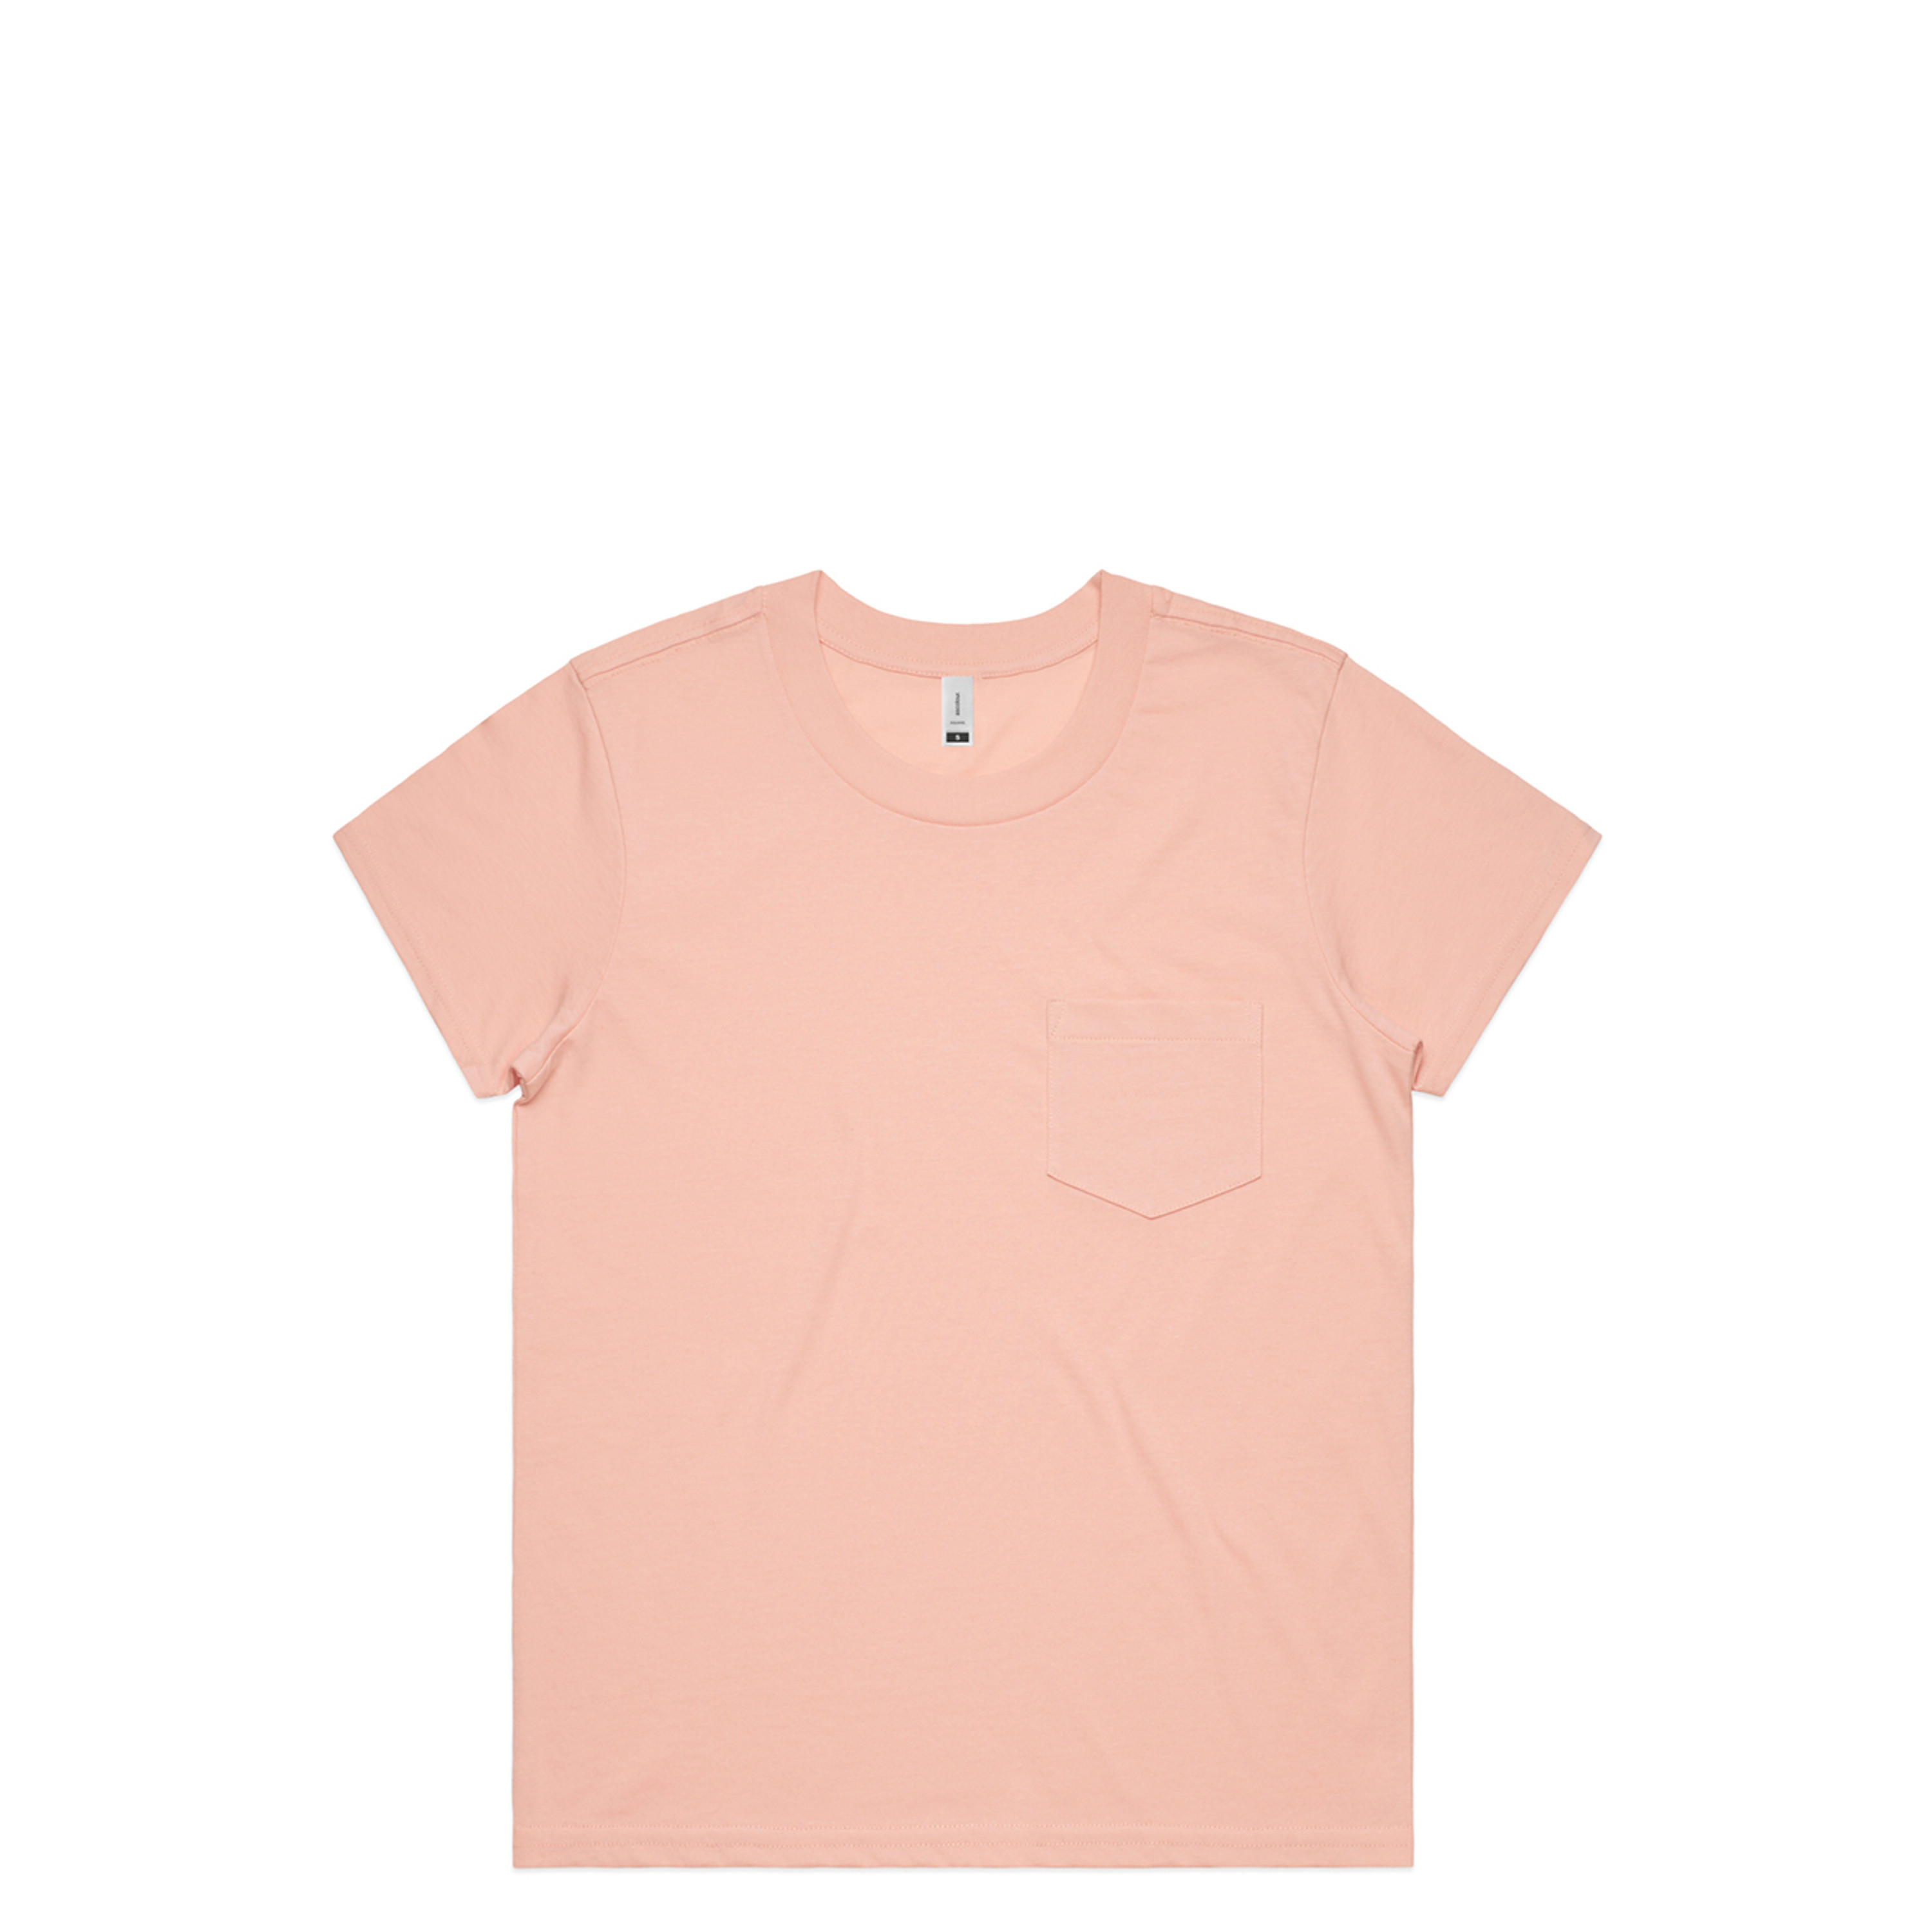 Wo's Square Pocket Tee - 4046